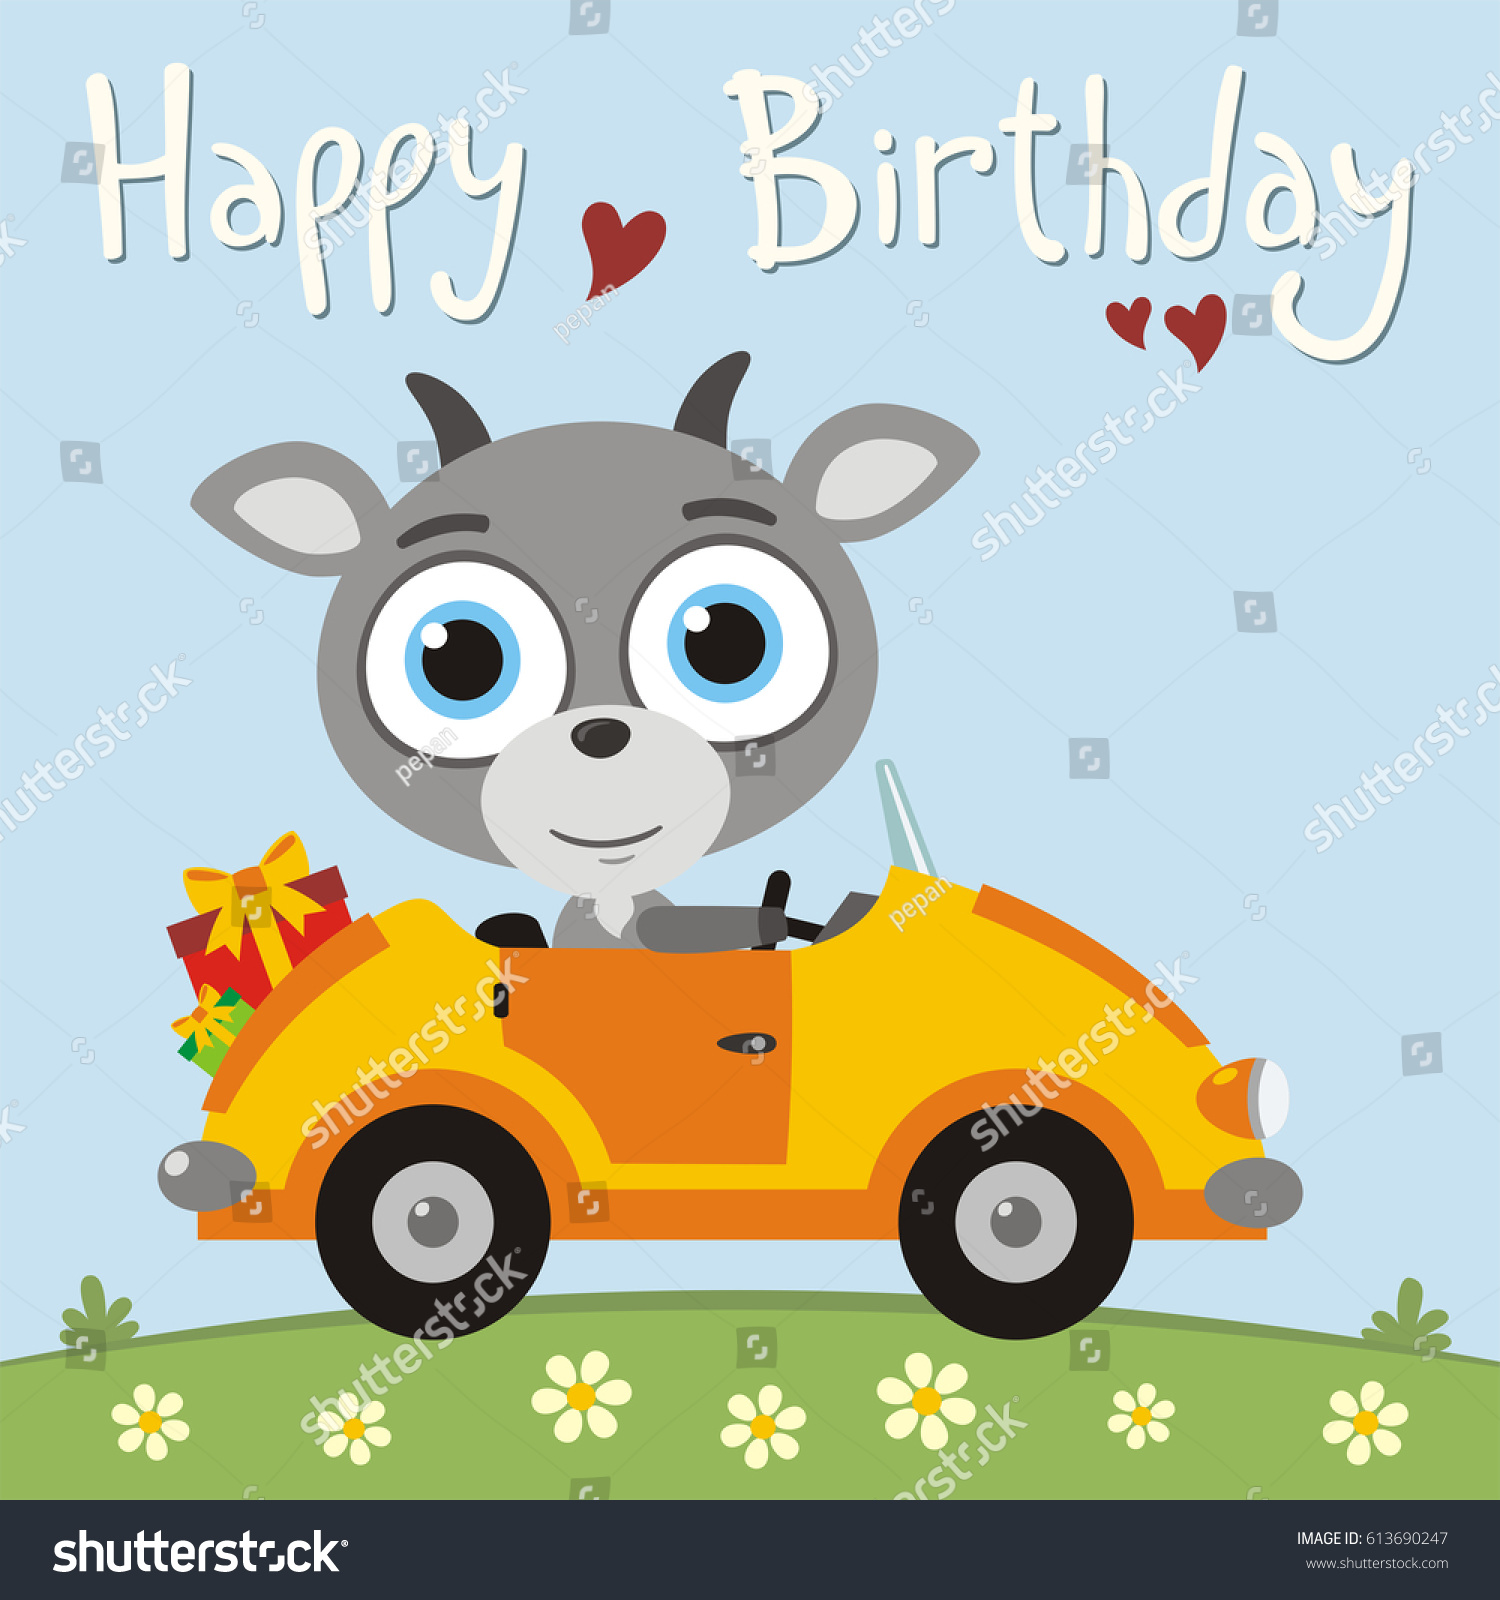 Happy birthday! Funny goat going in car with gifts. Greeting card.